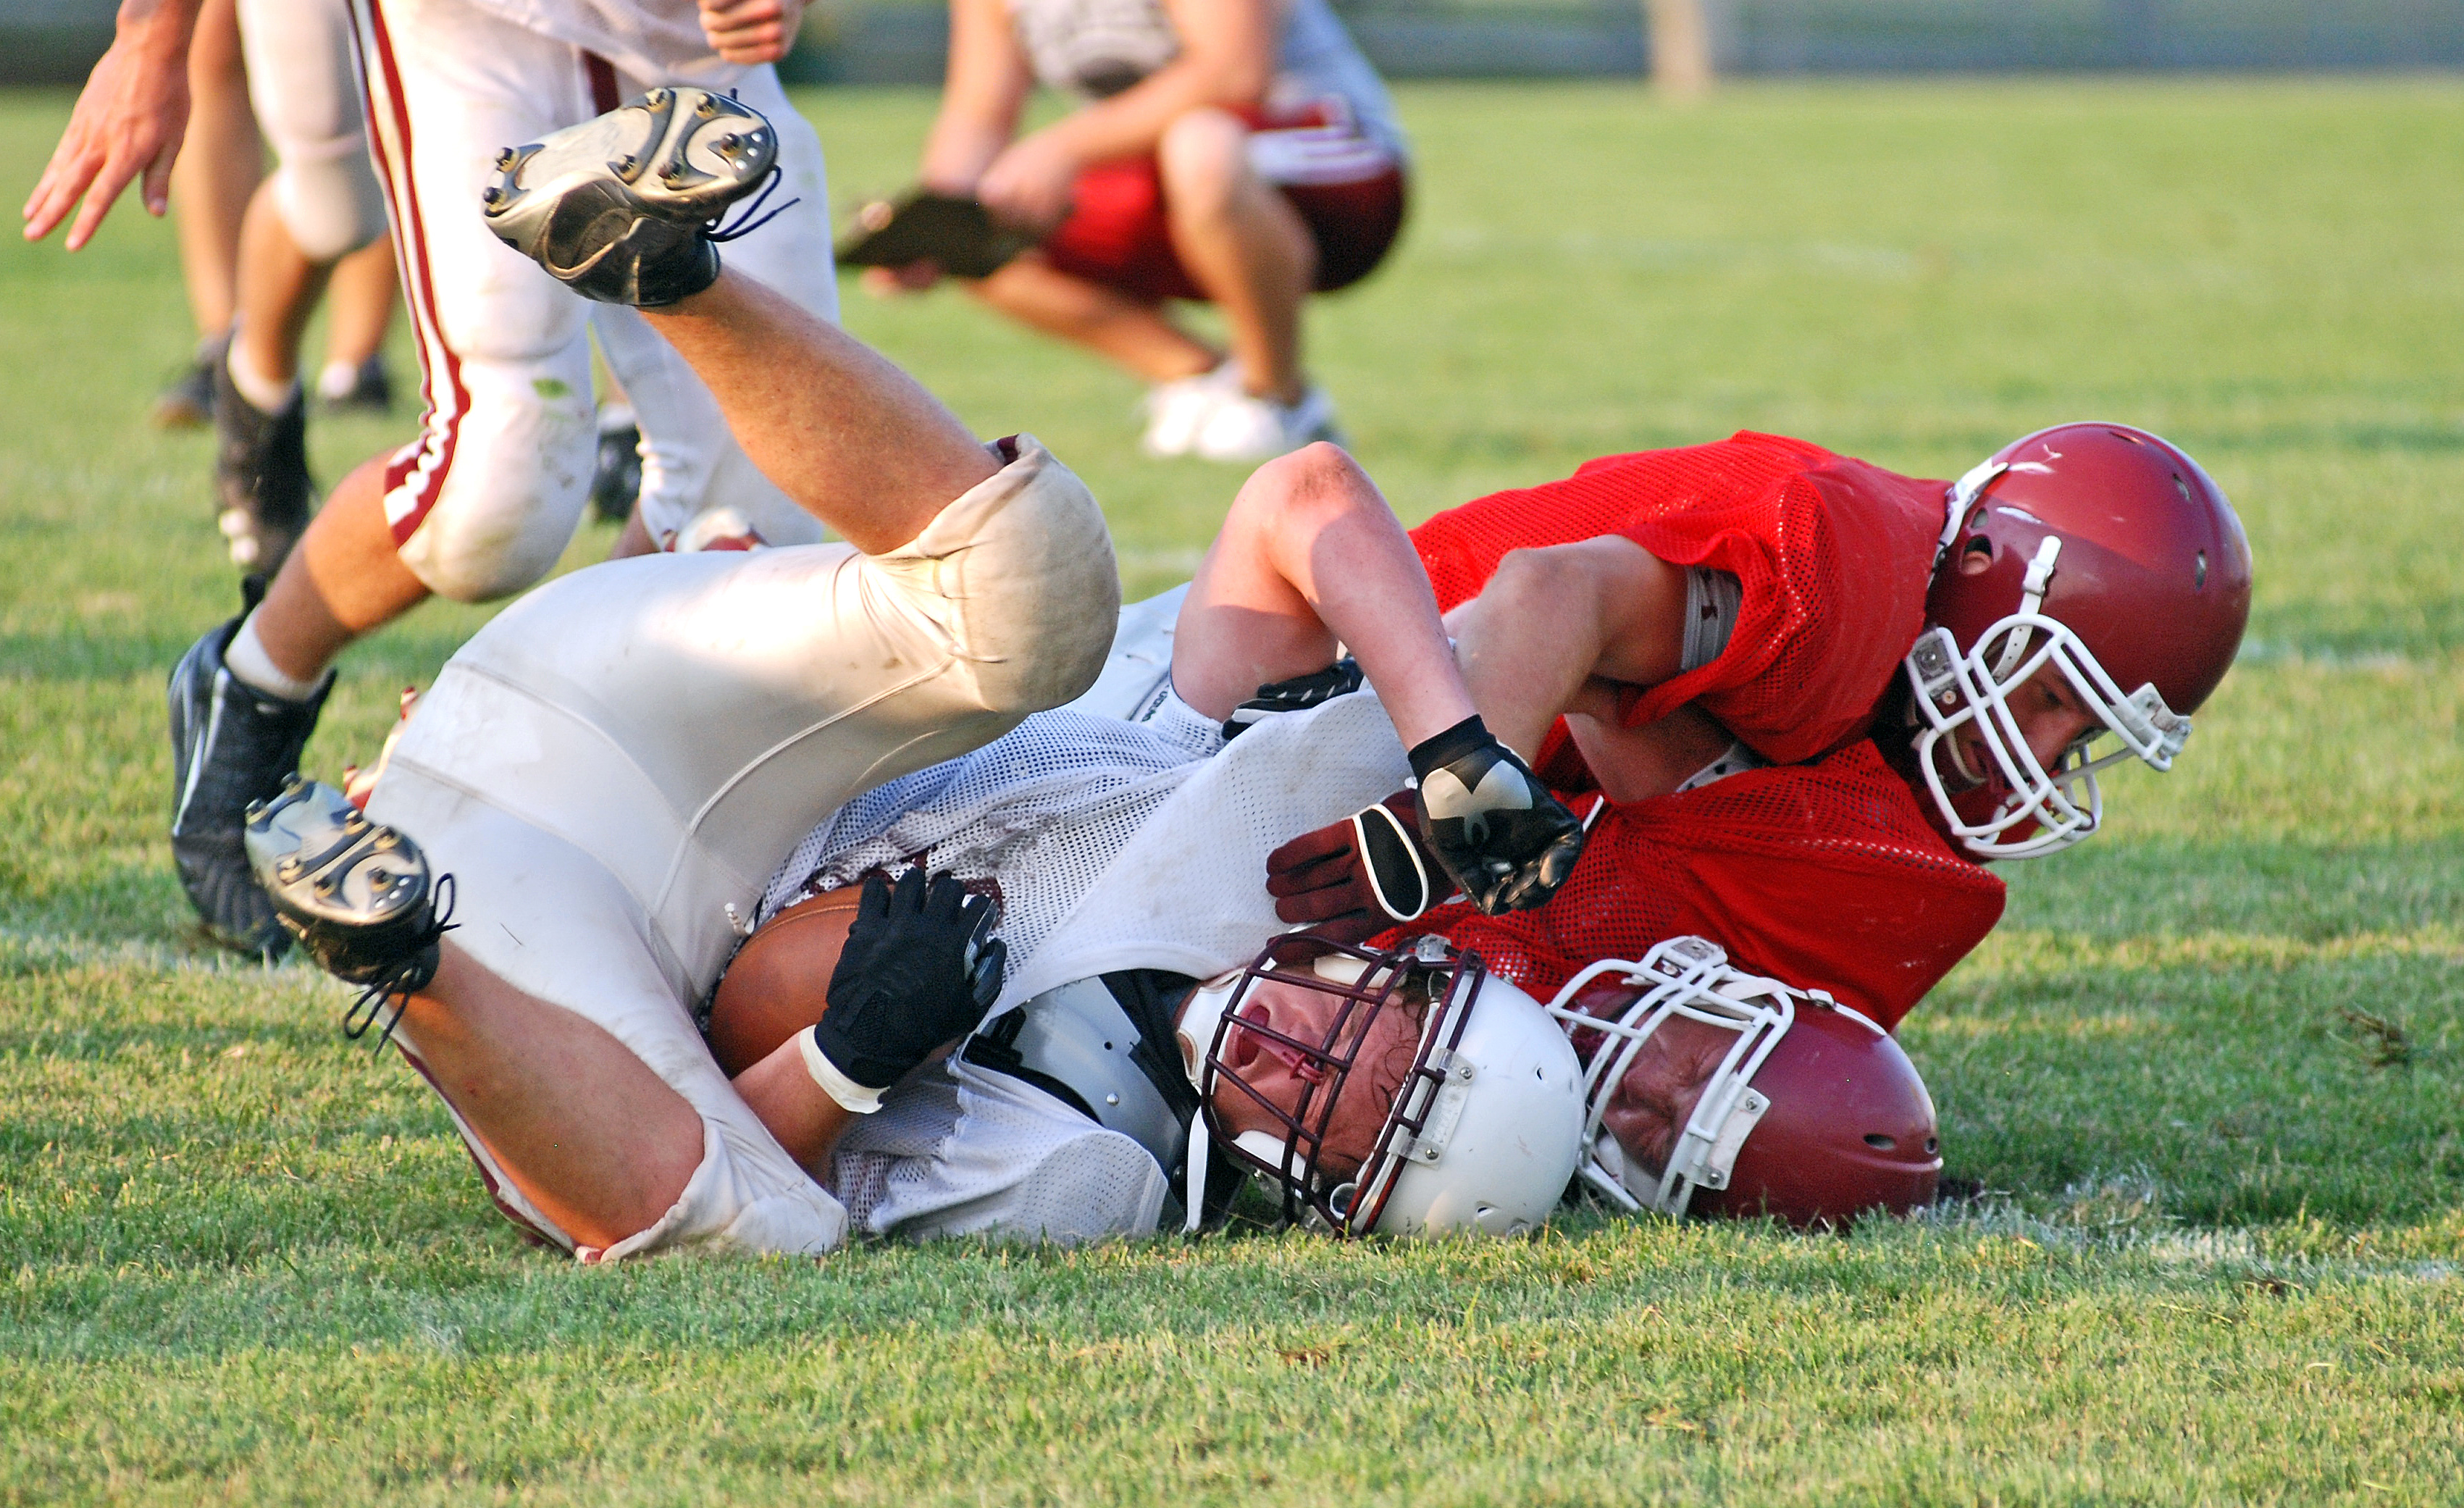 10 Concussion Safety Tips for Fall-Winter Student-Athletes